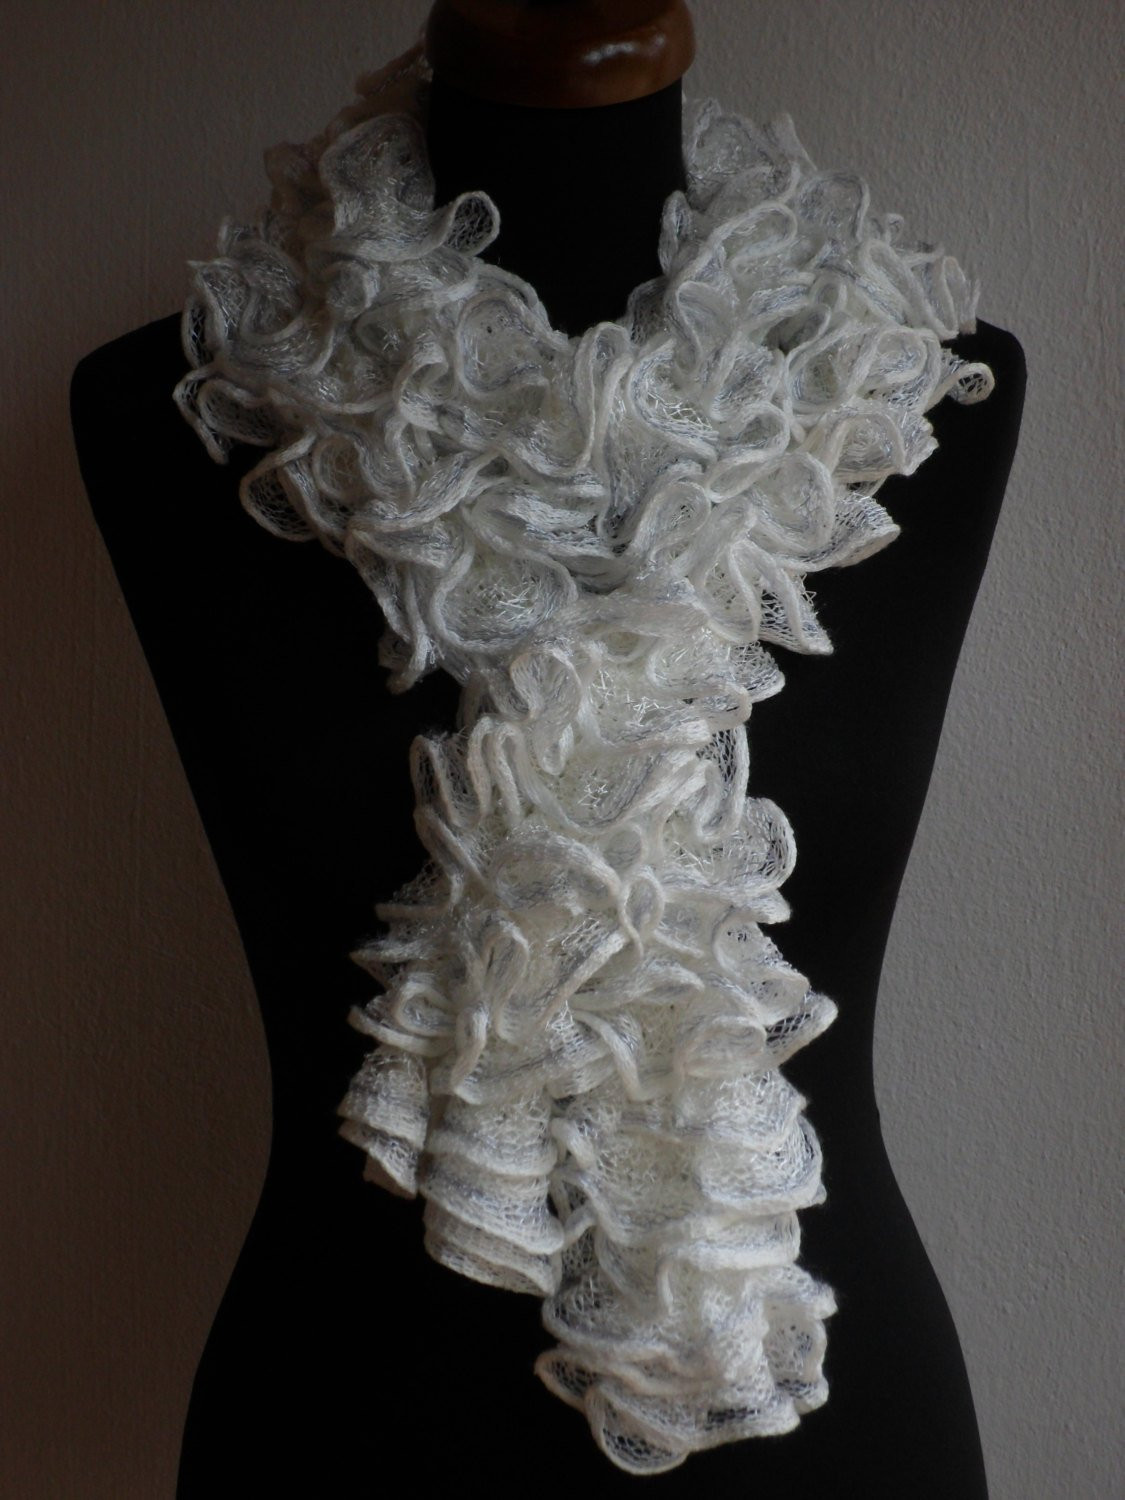 Awesome Ruffle Scarf Frilly Scarf Knitted Scarf White Scarf Knit Ruffle Scarf Of Marvelous 50 Pics Knit Ruffle Scarf